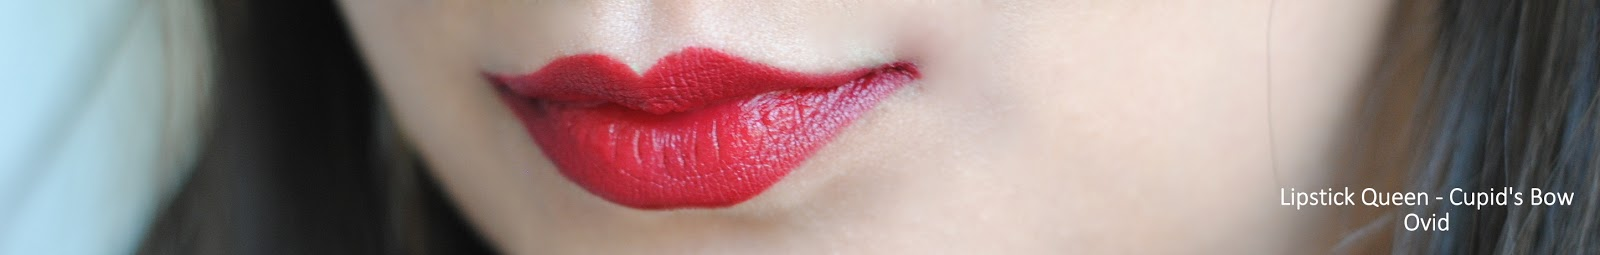 lipstick queen cupid's bow swatches ovid